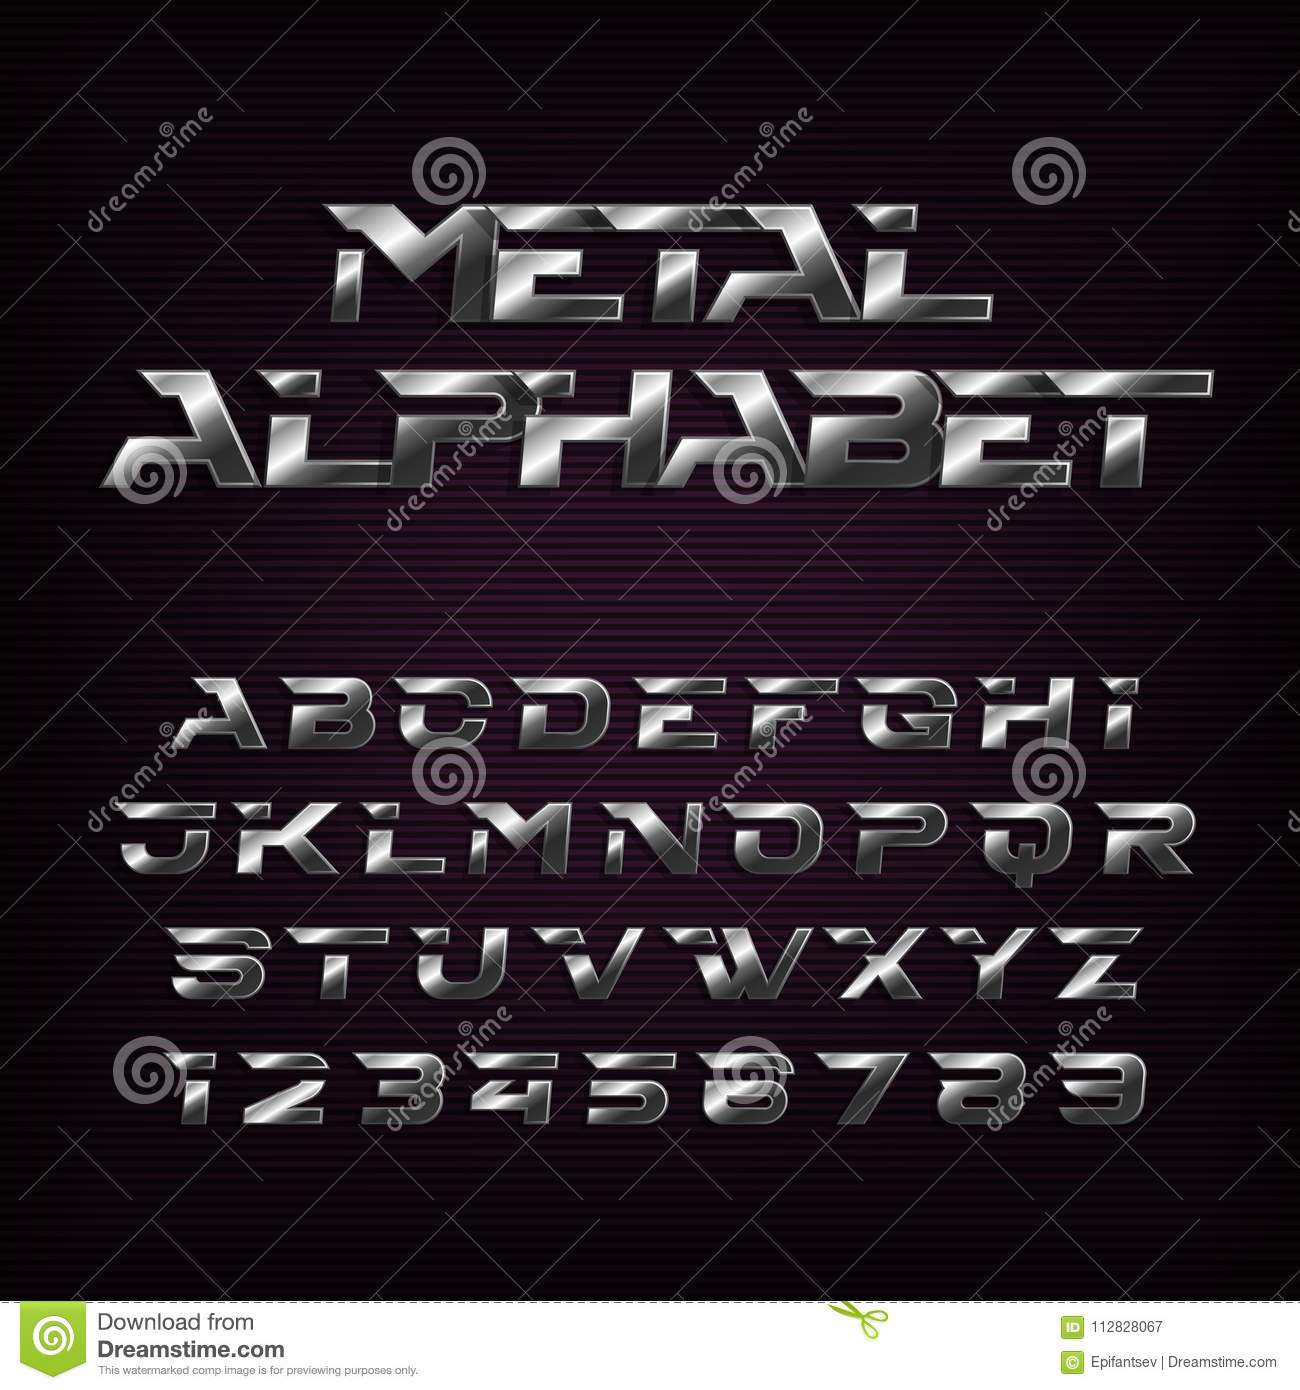 Silver Effect Letters Alphabet: Metal Effect Alphabet Font. Futuristic Steel Letters And